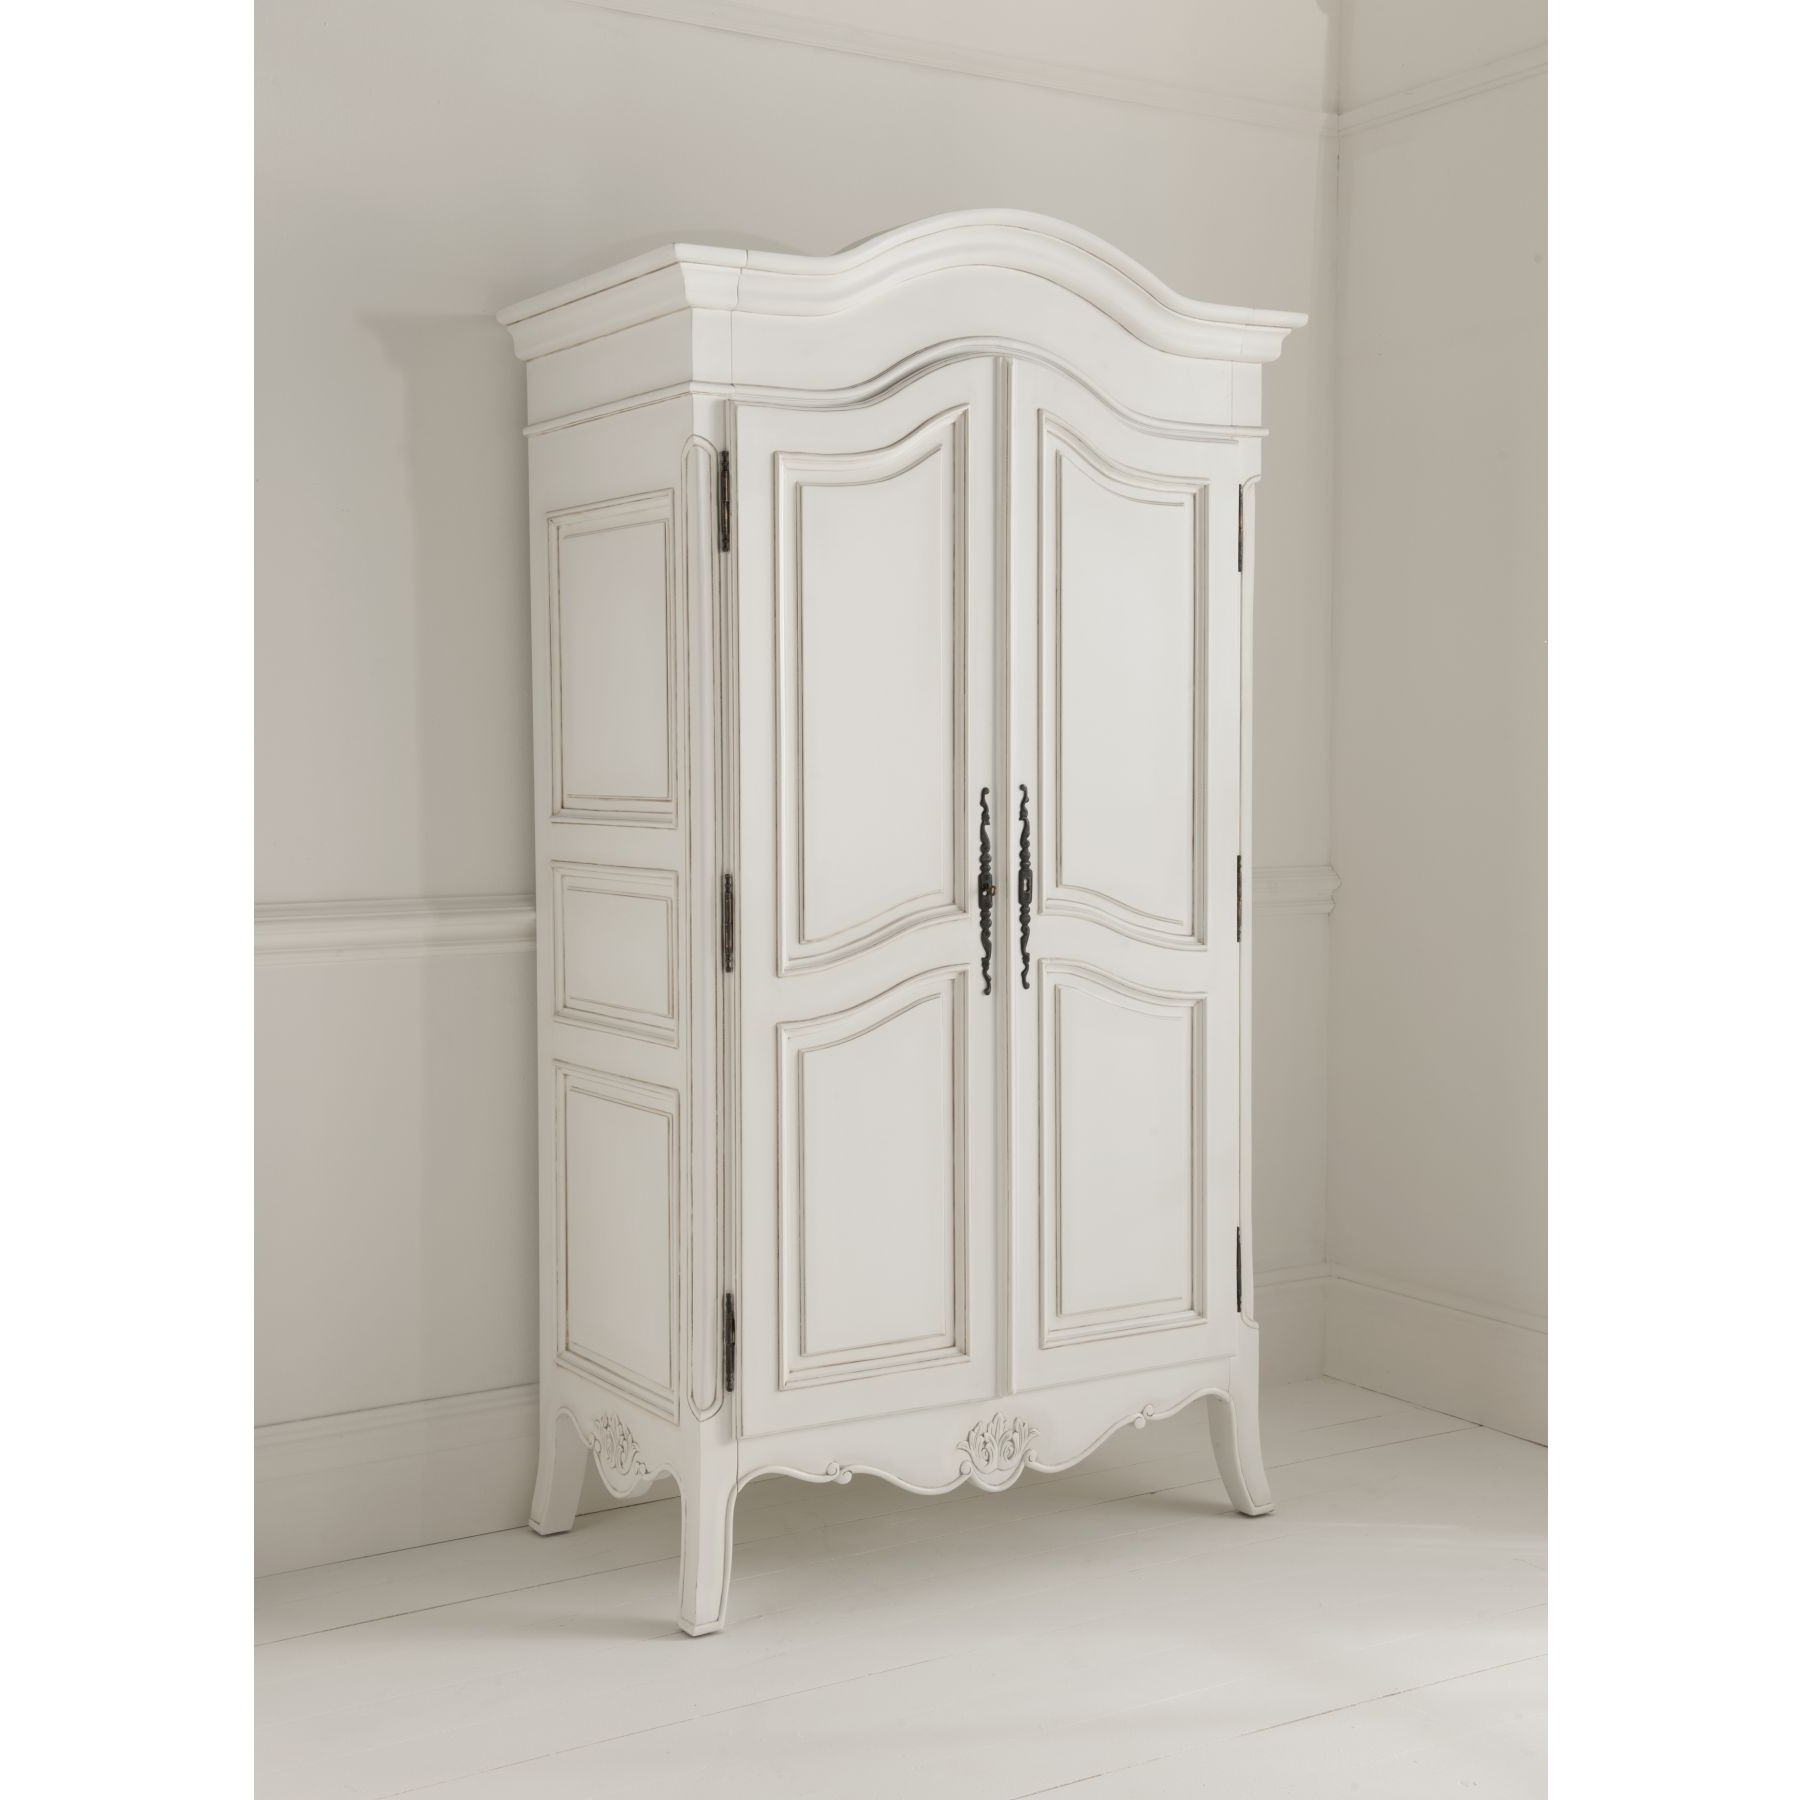 2018 White Antique Wardrobes With Mirrored Armoire For Sale French Vintage Armoires Antique In Many (View 3 of 15)